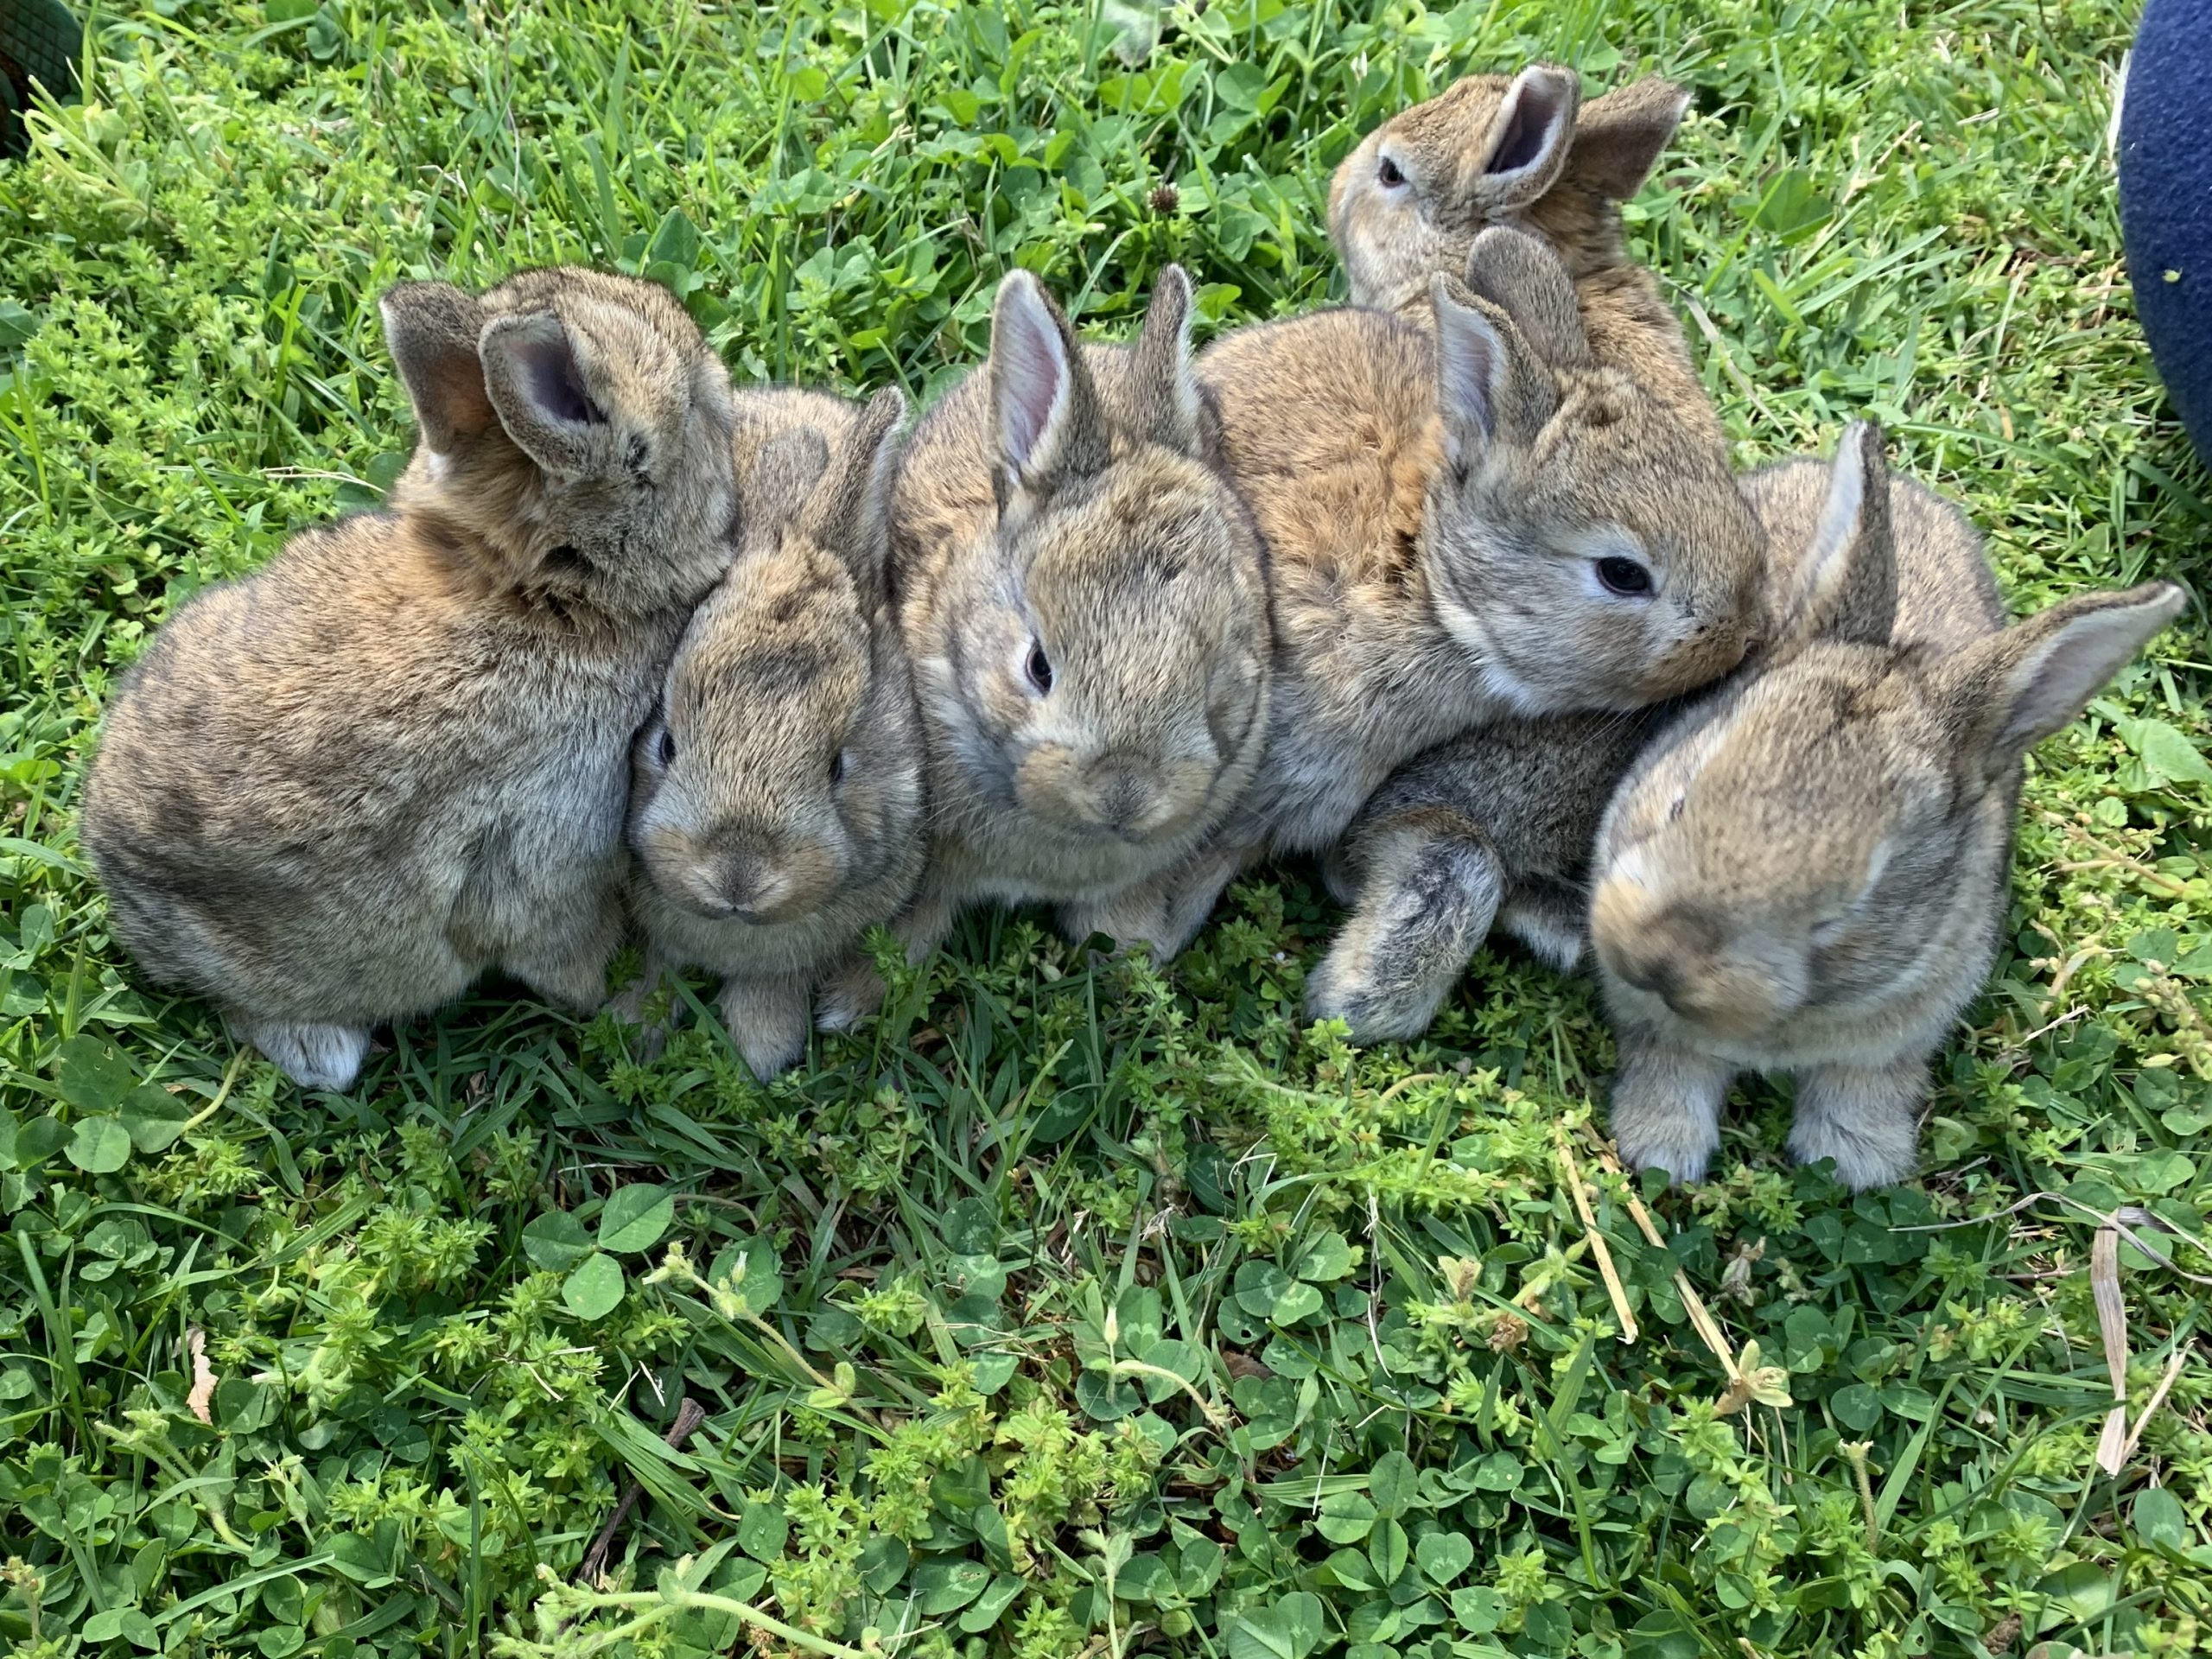 Five bunnies huddled in the grass